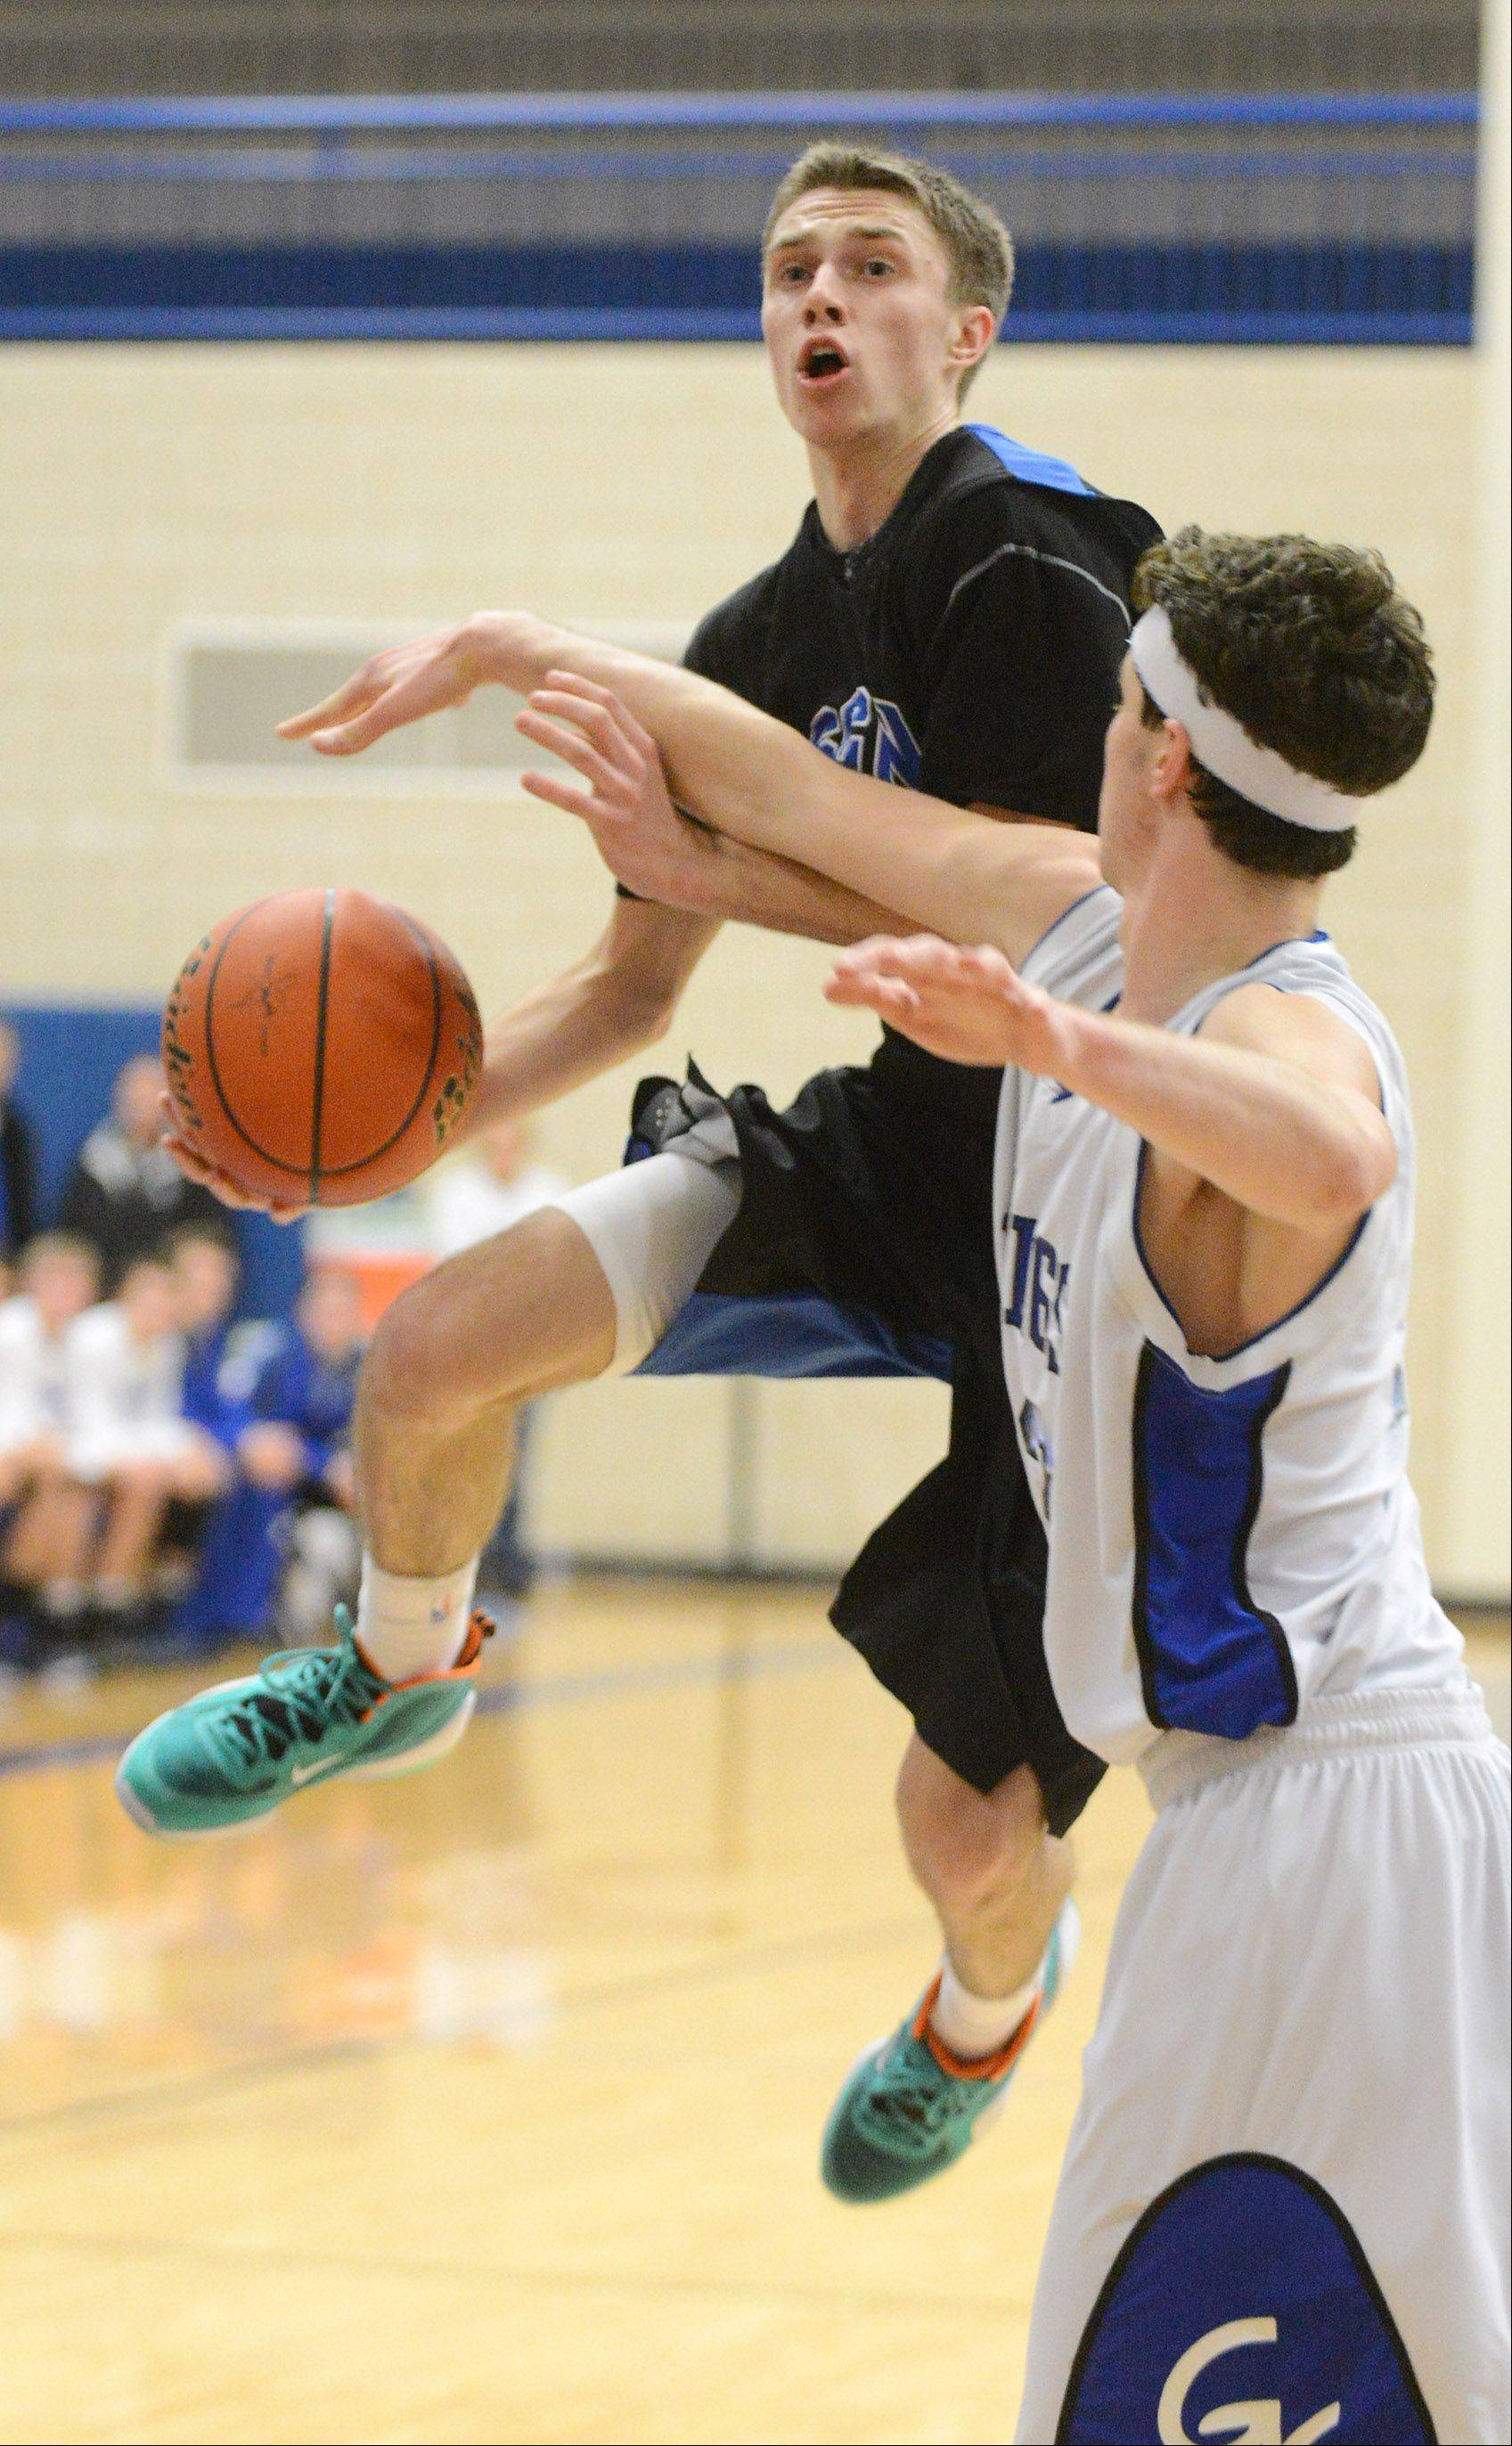 St. Charles North's Alec Goetz (1) drives to the basket as he is defended by Geneva's Mike Landi (52) during Friday's game in Geneva.